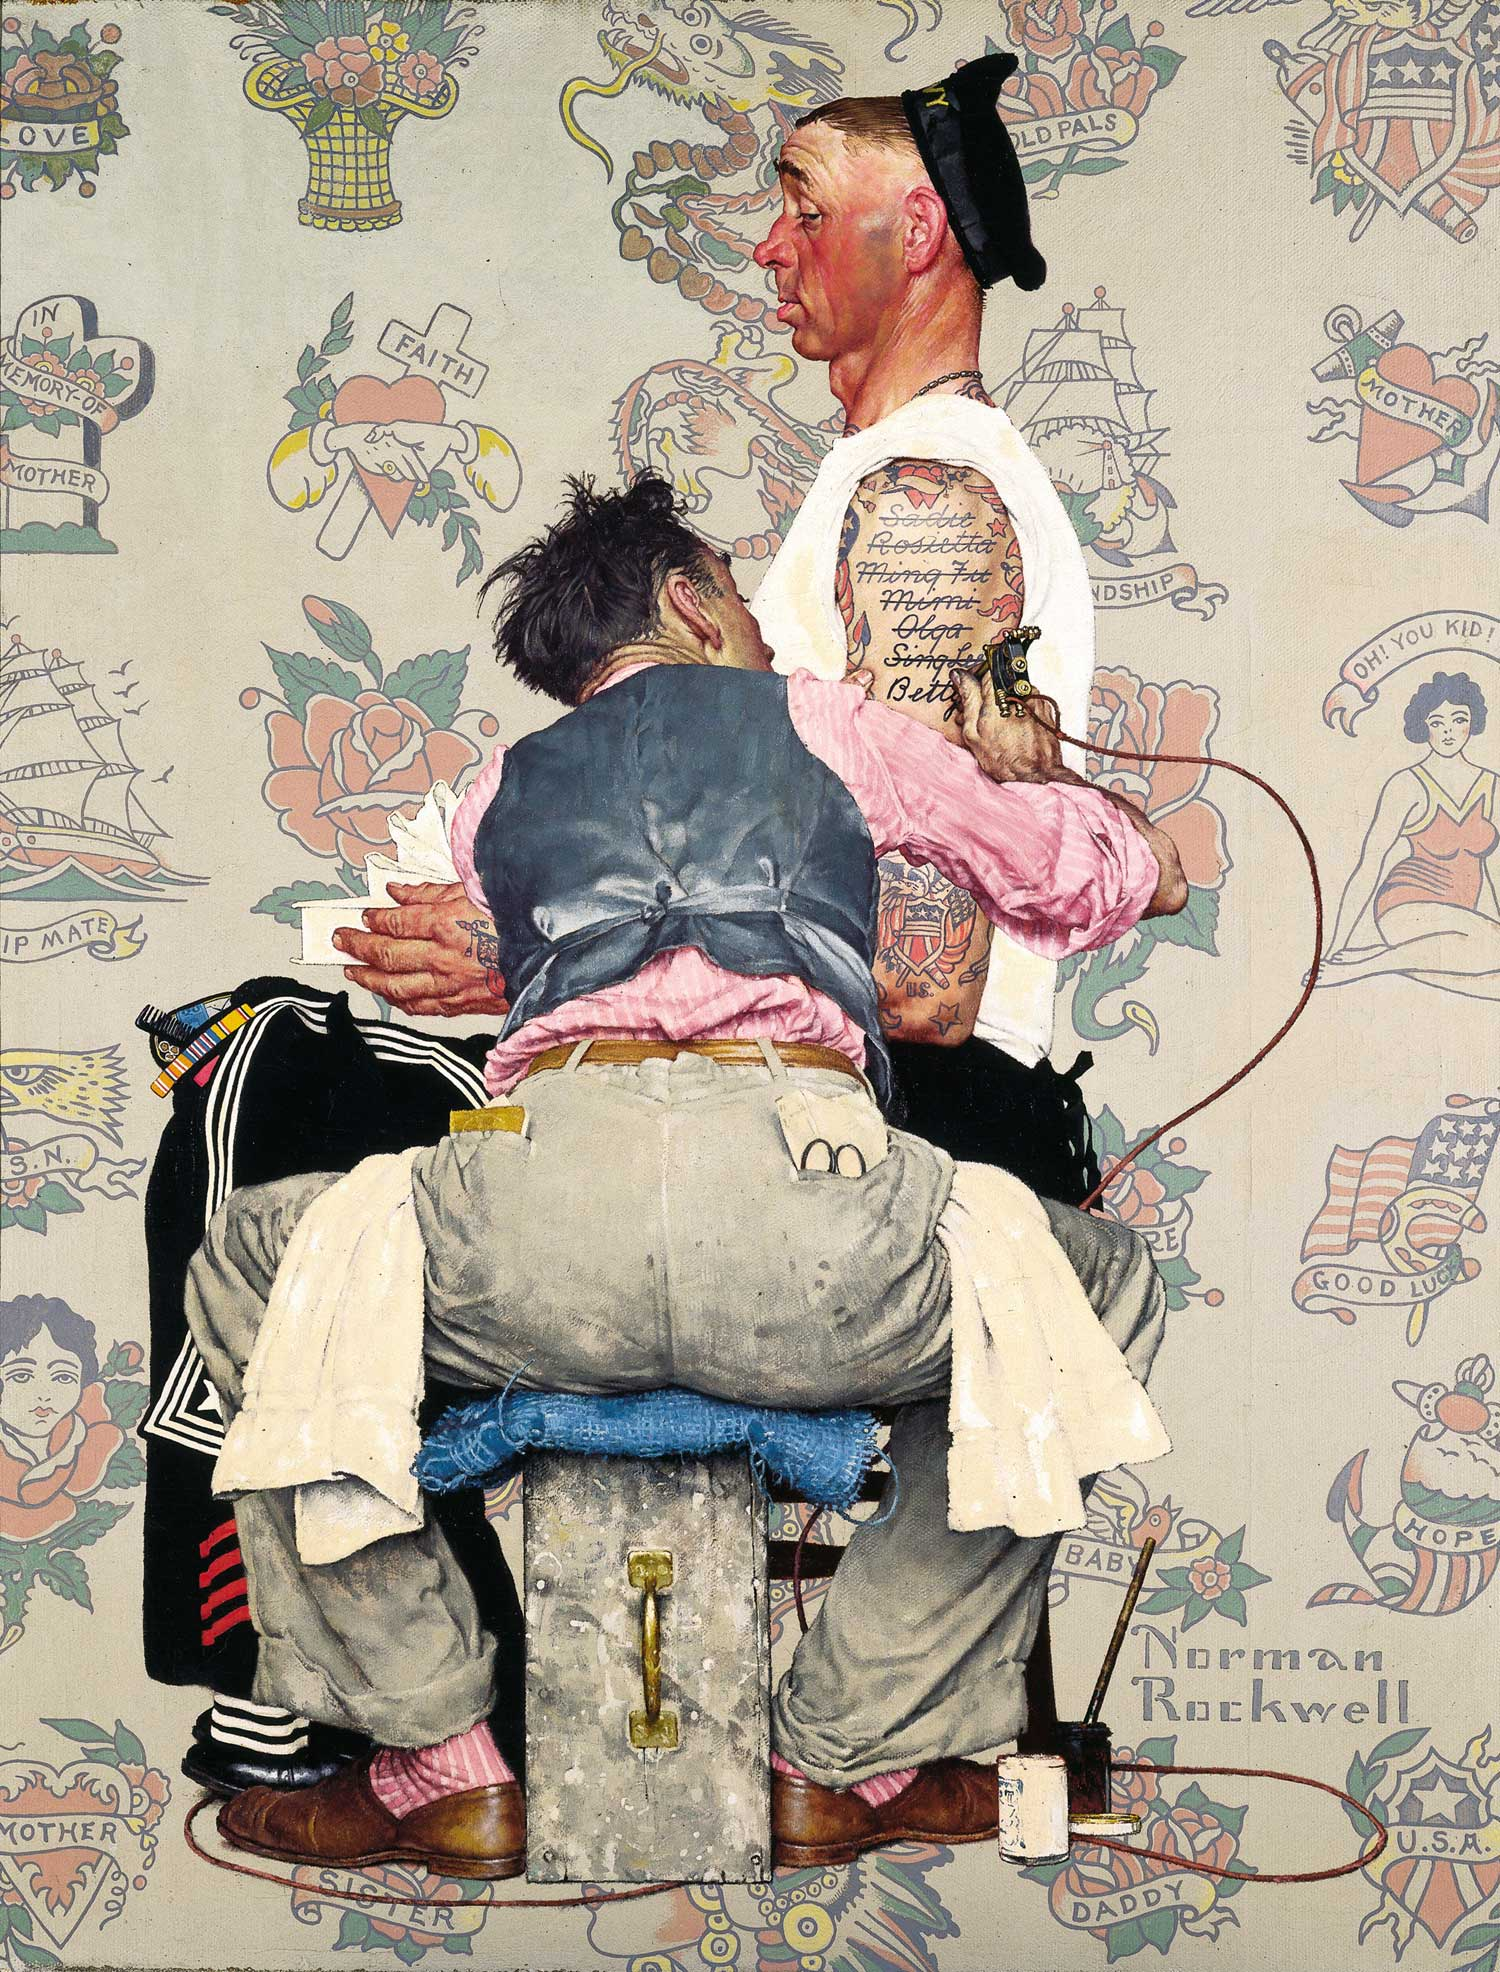 Tattoo-Artist - Norman Rockwell Museum - The Home for American ...